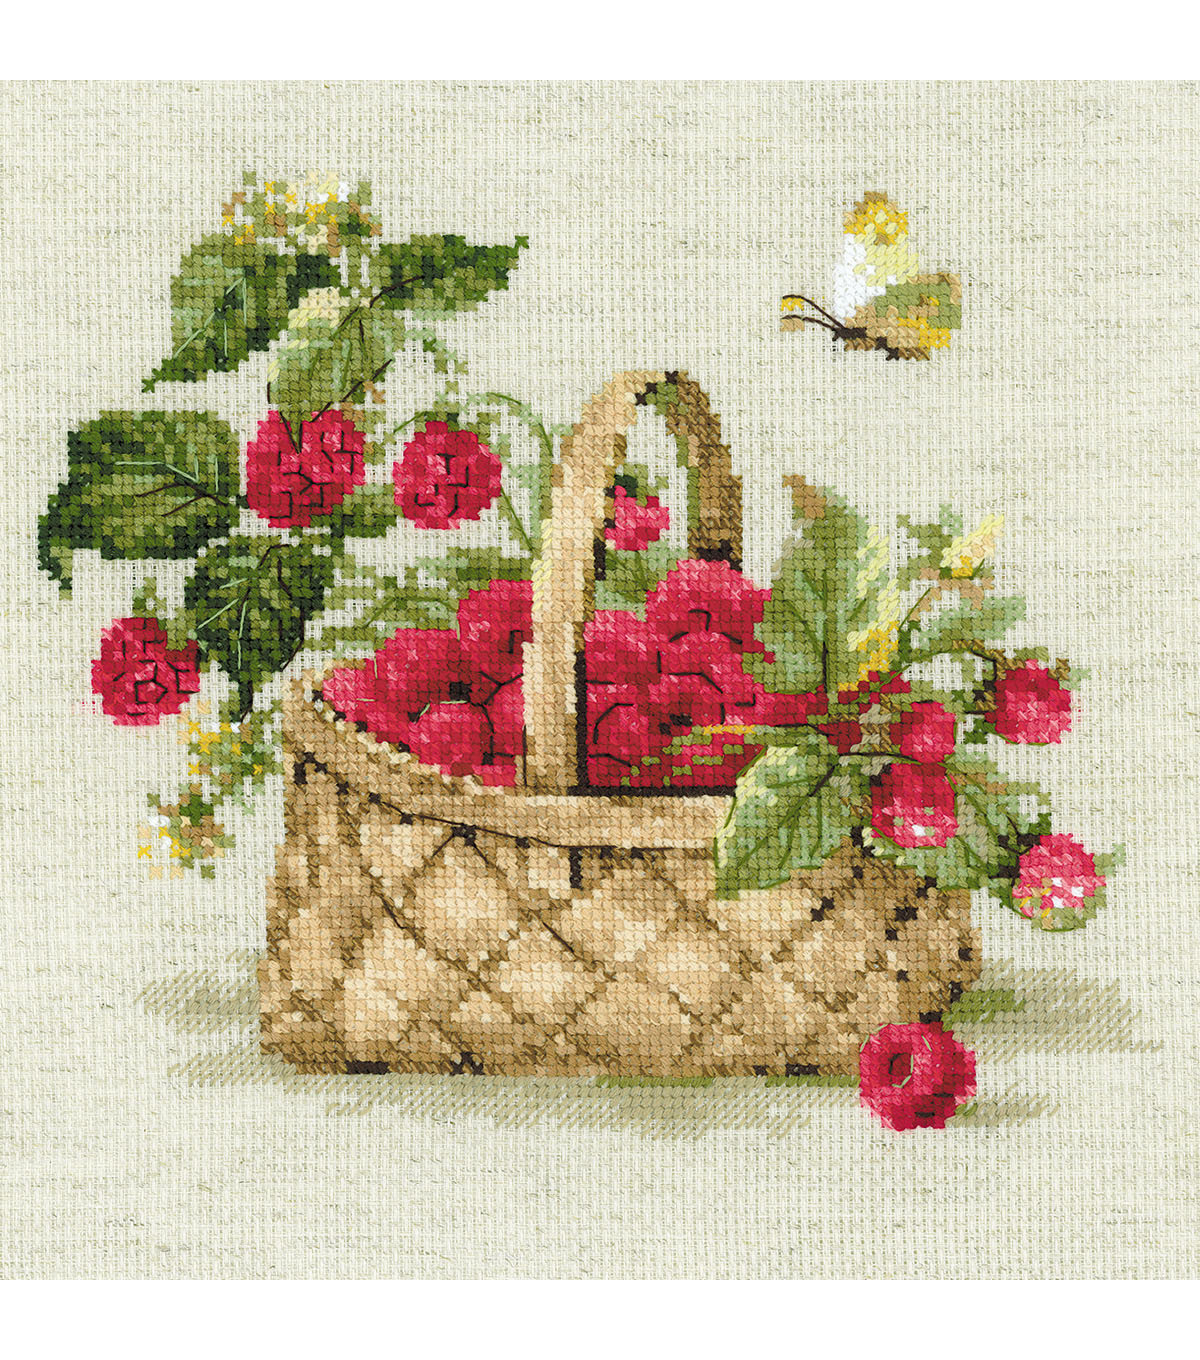 RIOLIS 11.75\u0027\u0027x11.75\u0027\u0027 Counted Cross Stitch Kit-Basket of Raspberries